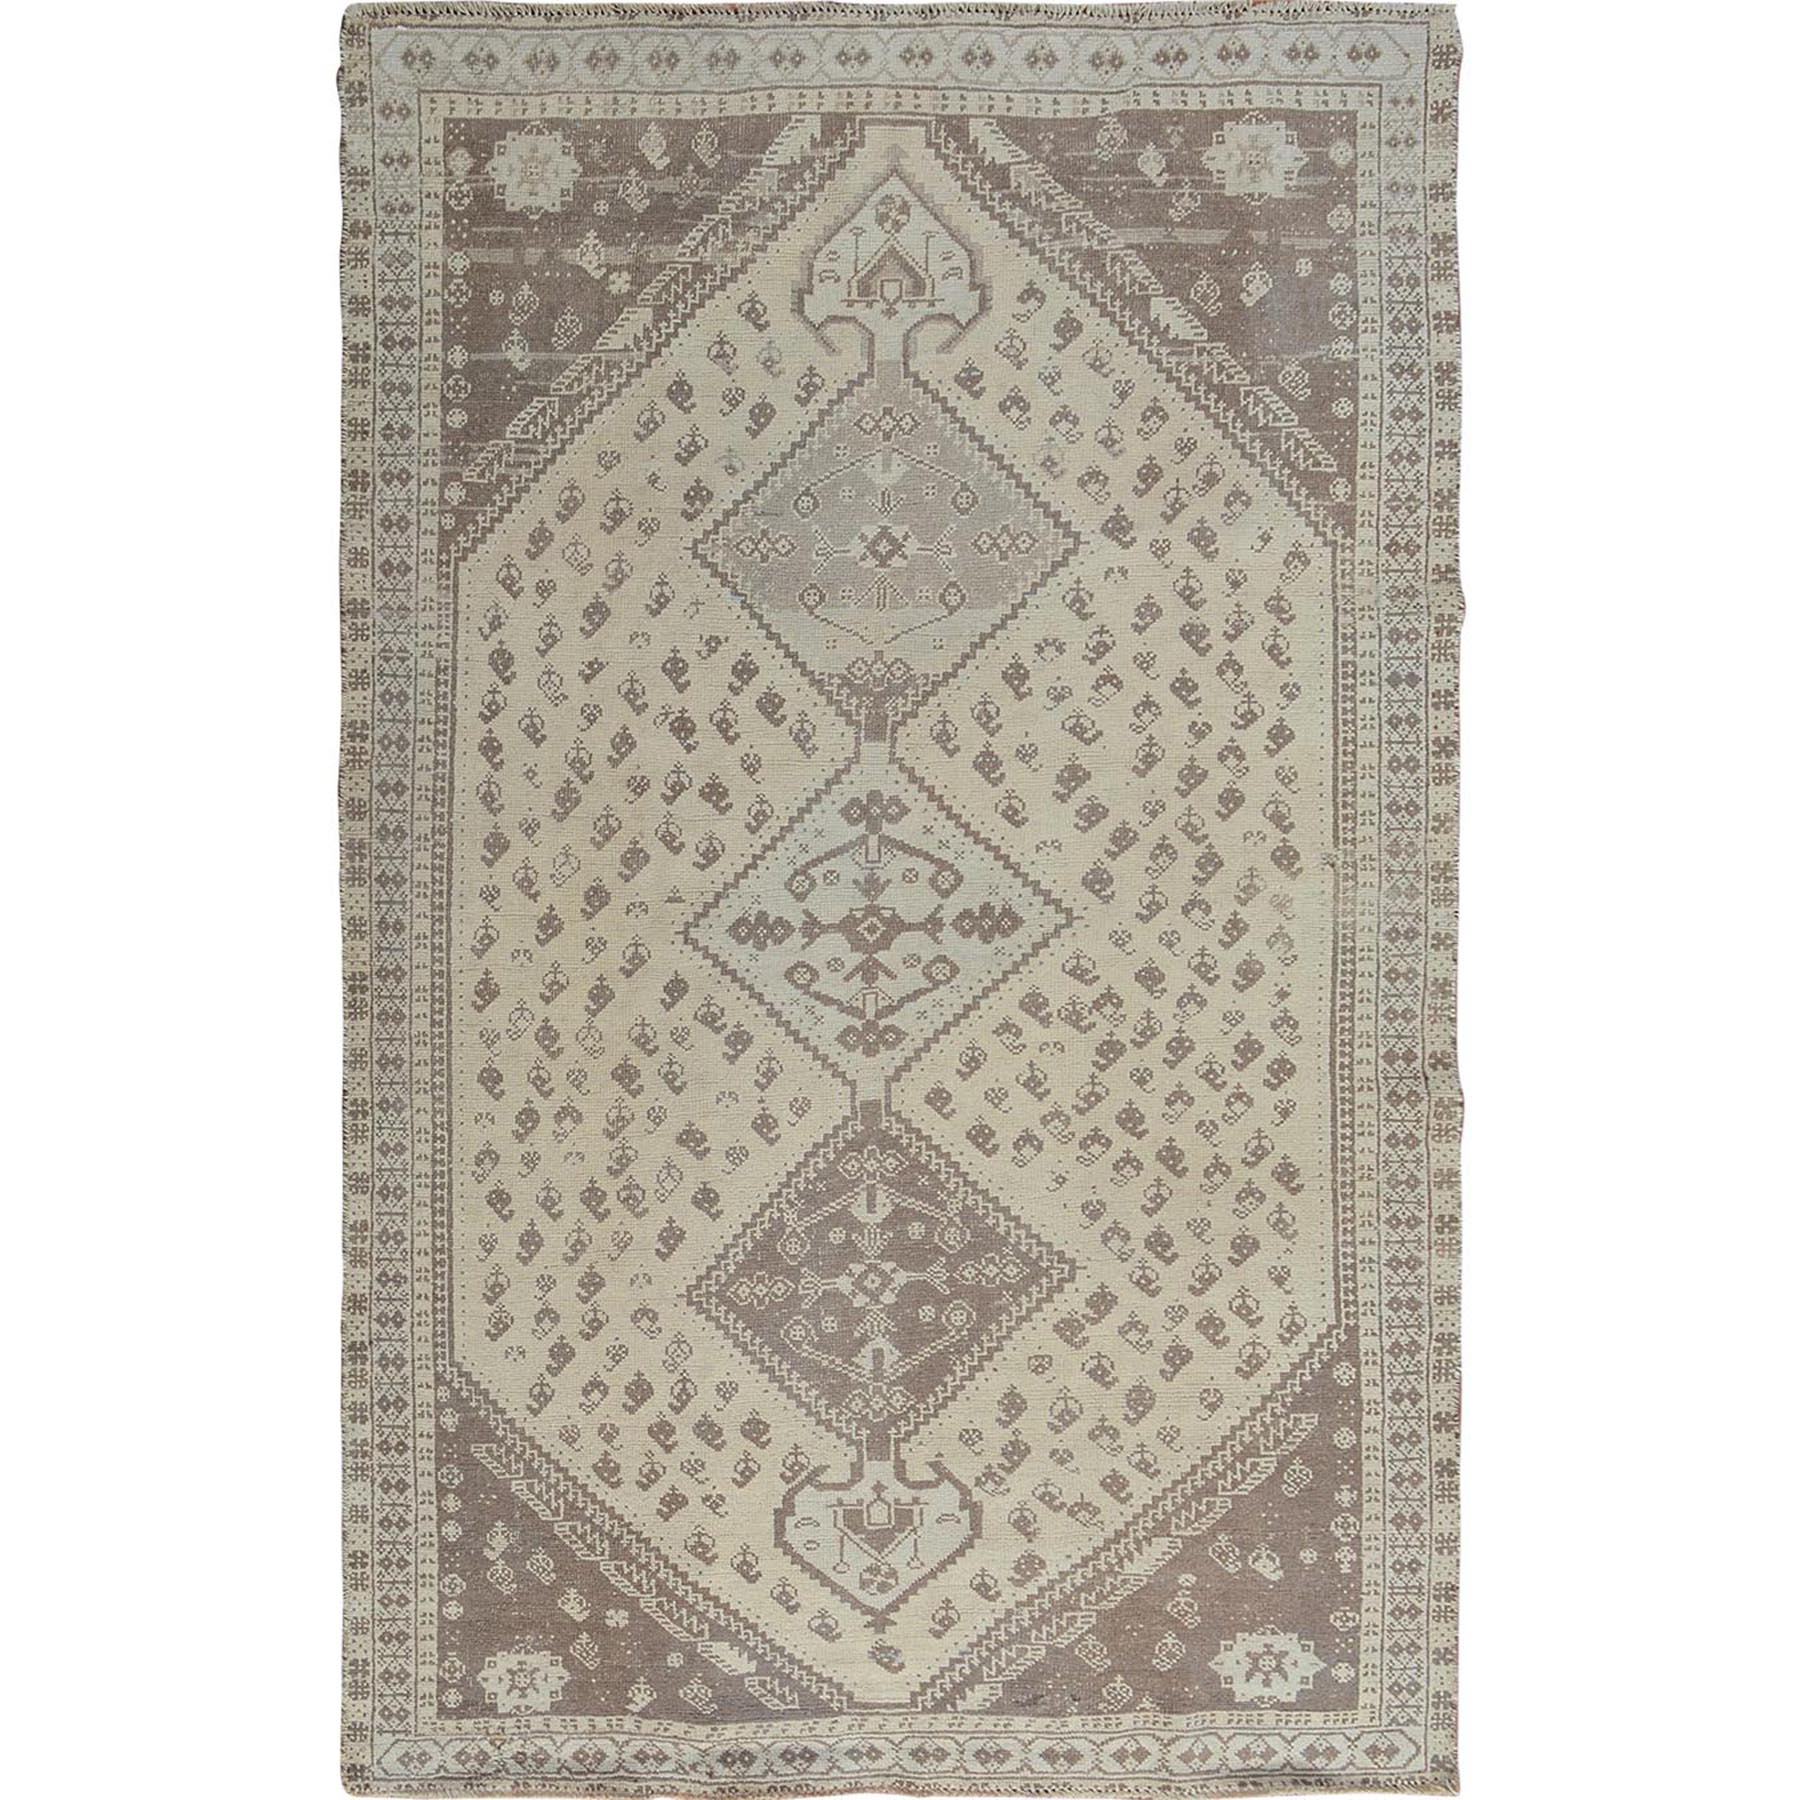 "5'x7'9"" Natural Colors Vintage And Worn Down Persian Shiraz Pure Wool Hand Woven Oriental Rug"